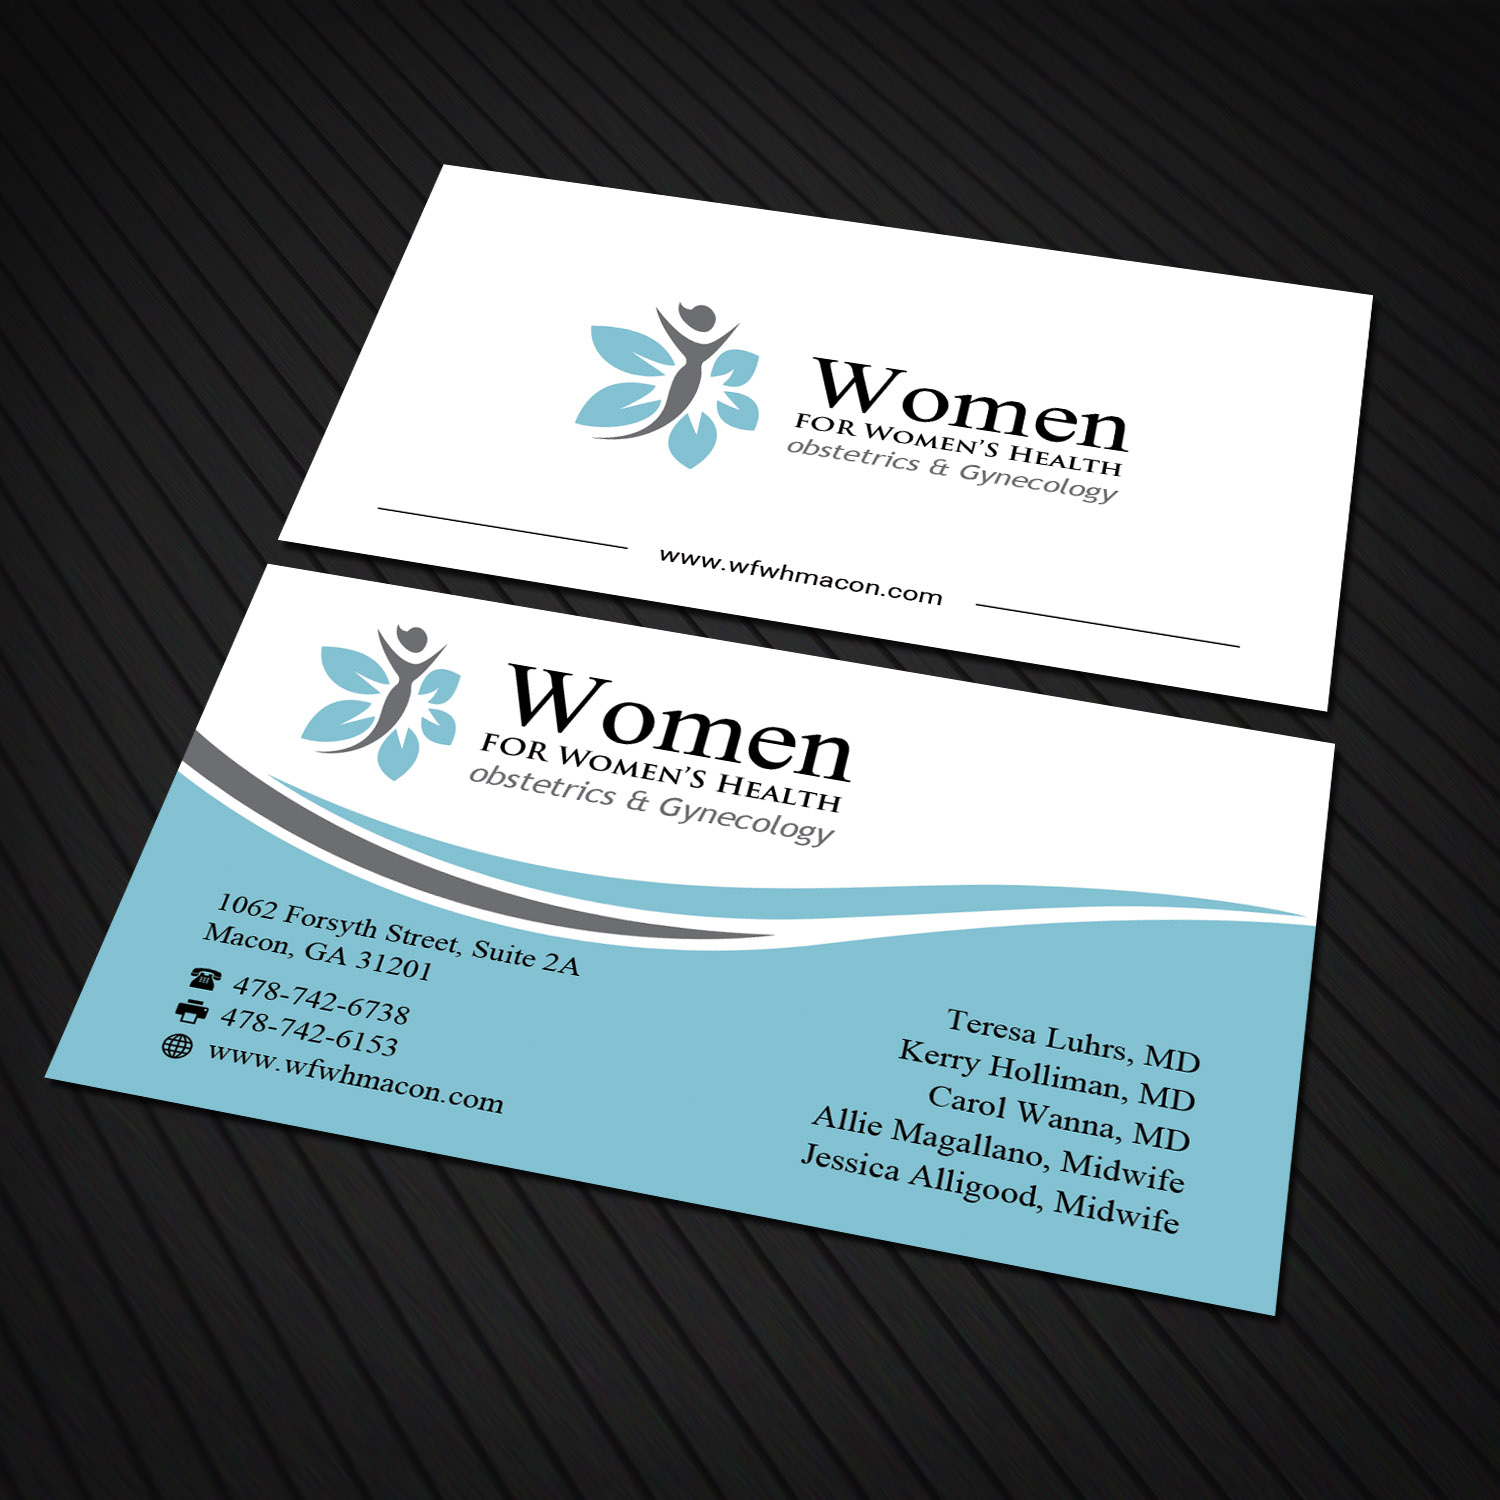 Personable elegant business business card design for women for business card design by sandaruwan for women for womens health design 15724387 colourmoves Gallery